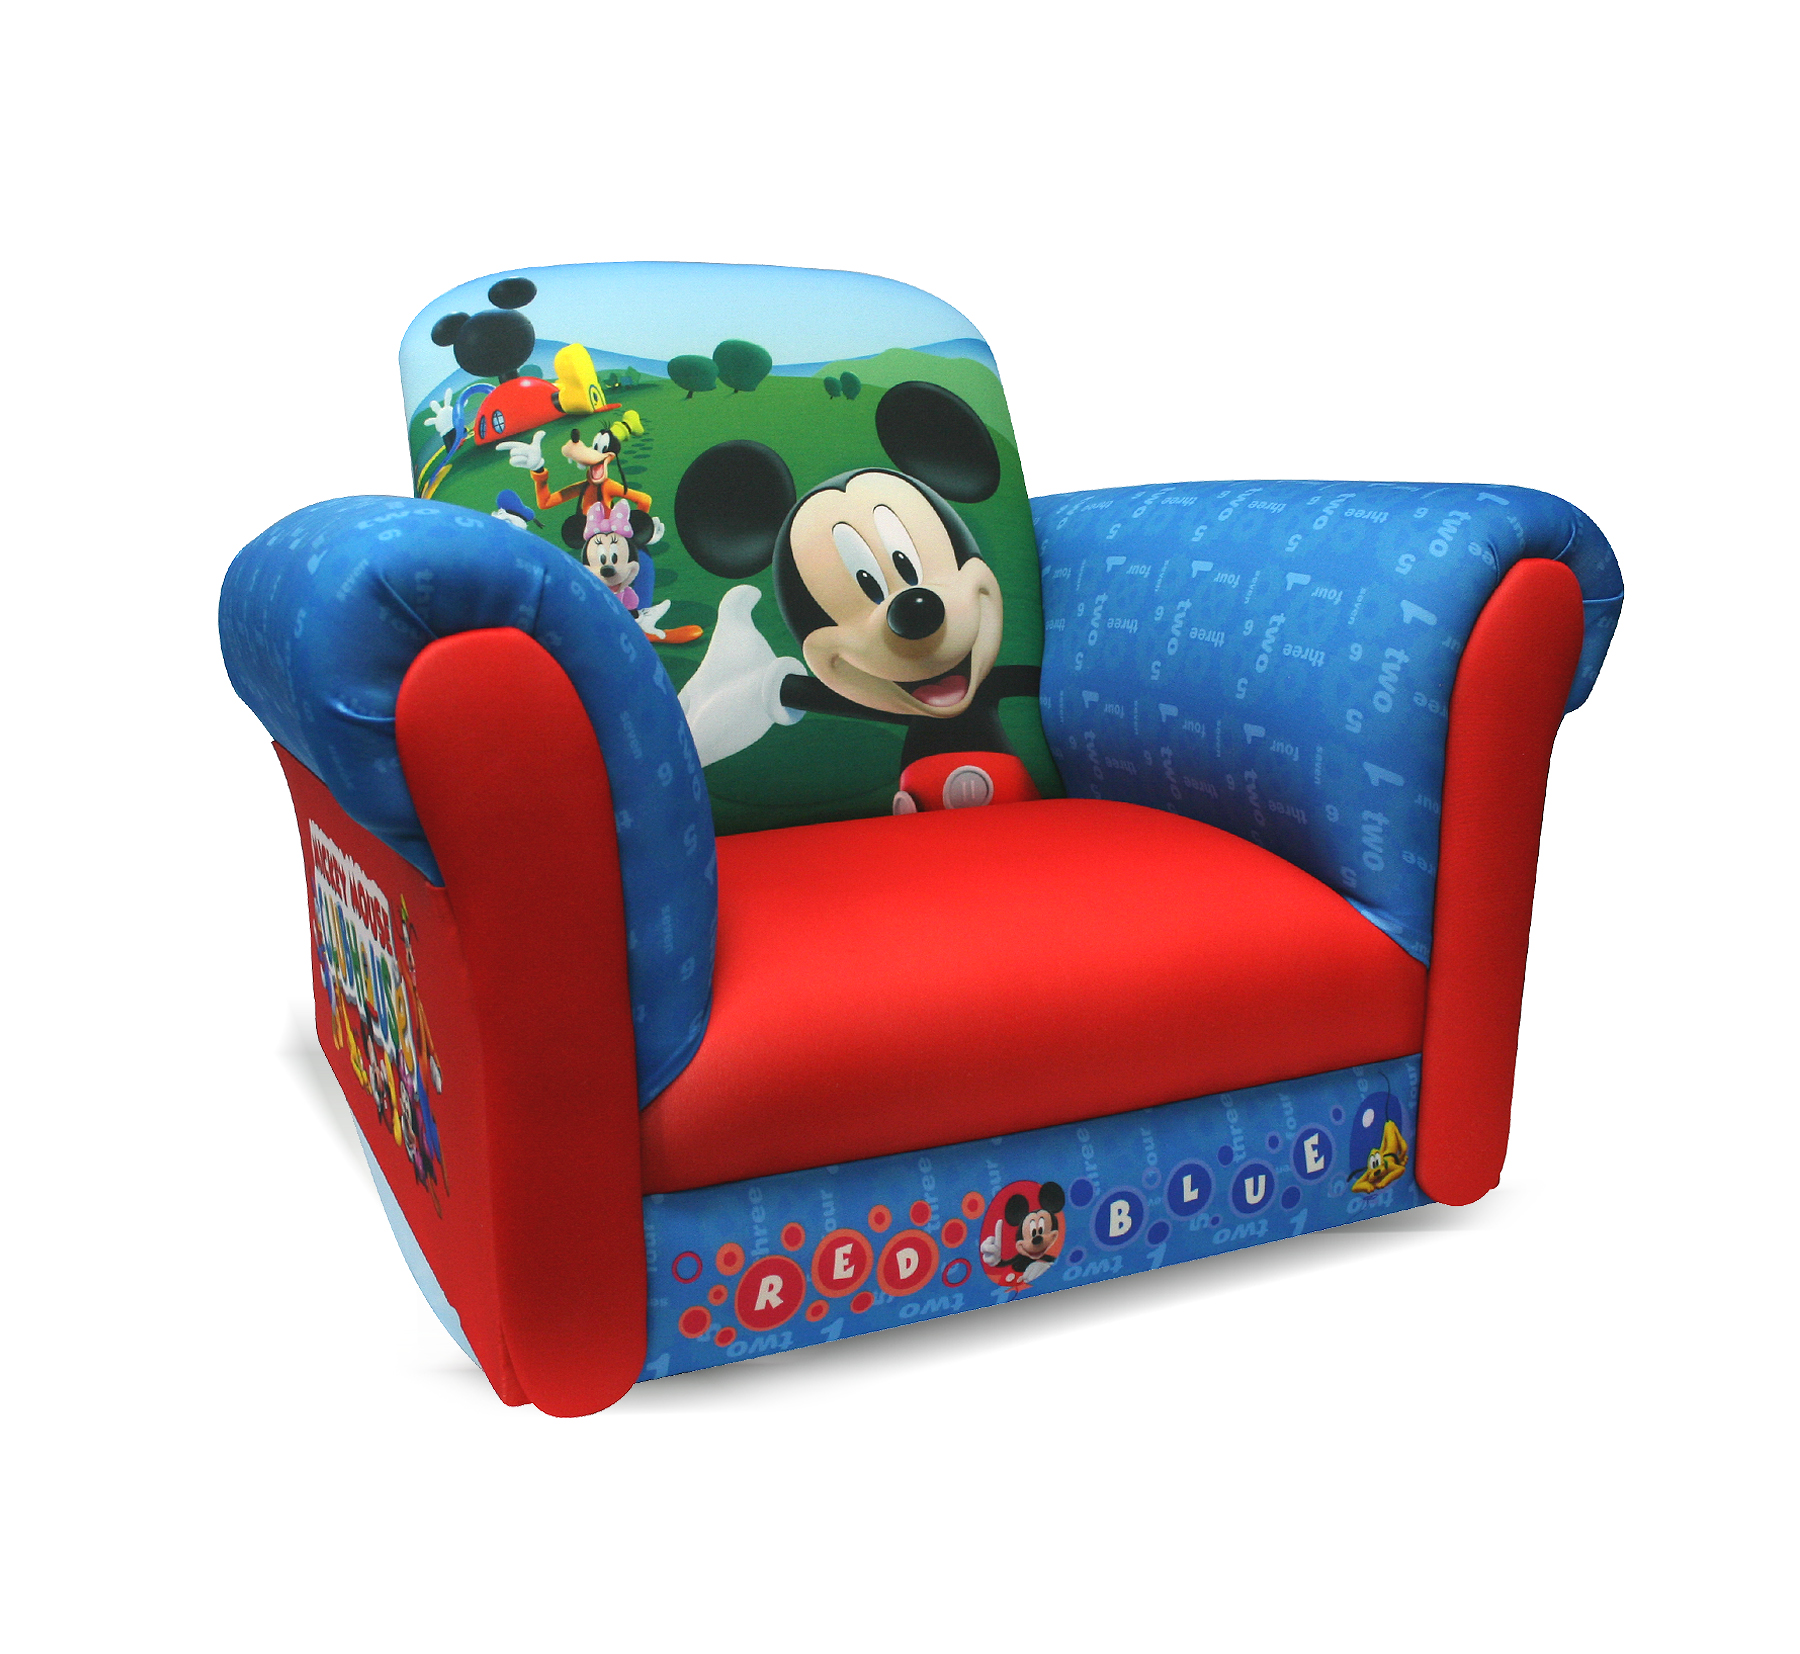 minnie mouse recliner chair amazon kitchen chairs children's furniture by miguel almena at coroflot.com